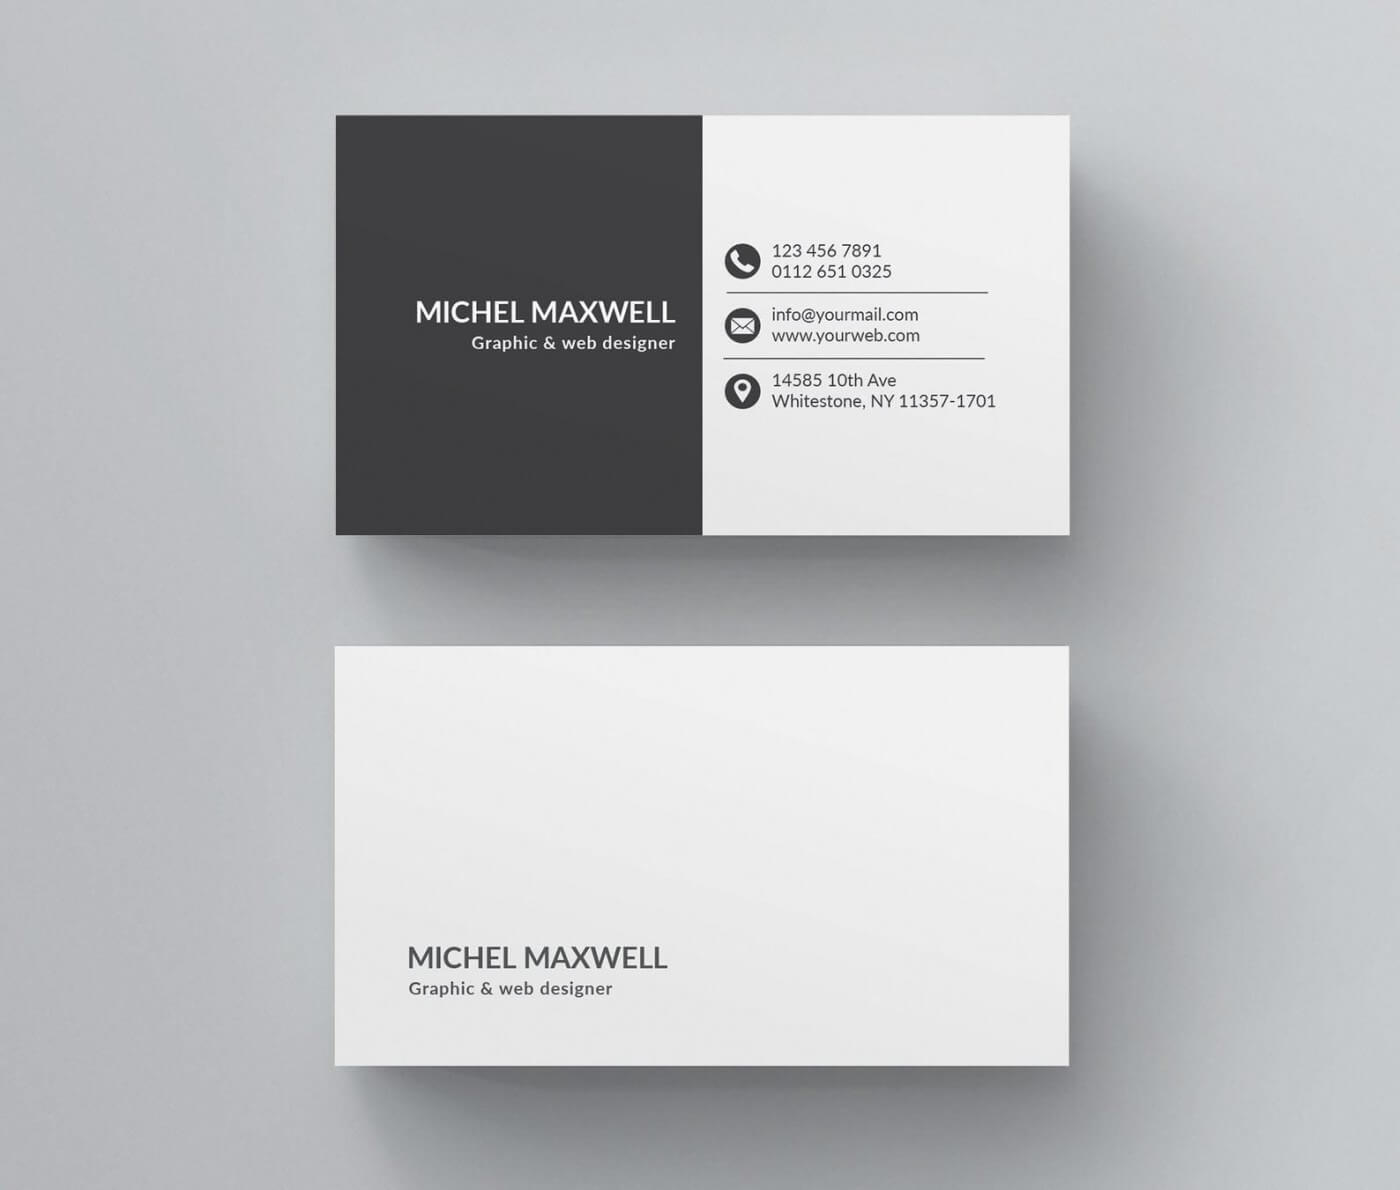 012 Ms Word Business Card Template Frees Document Cpr Throughout Cpr Card Template